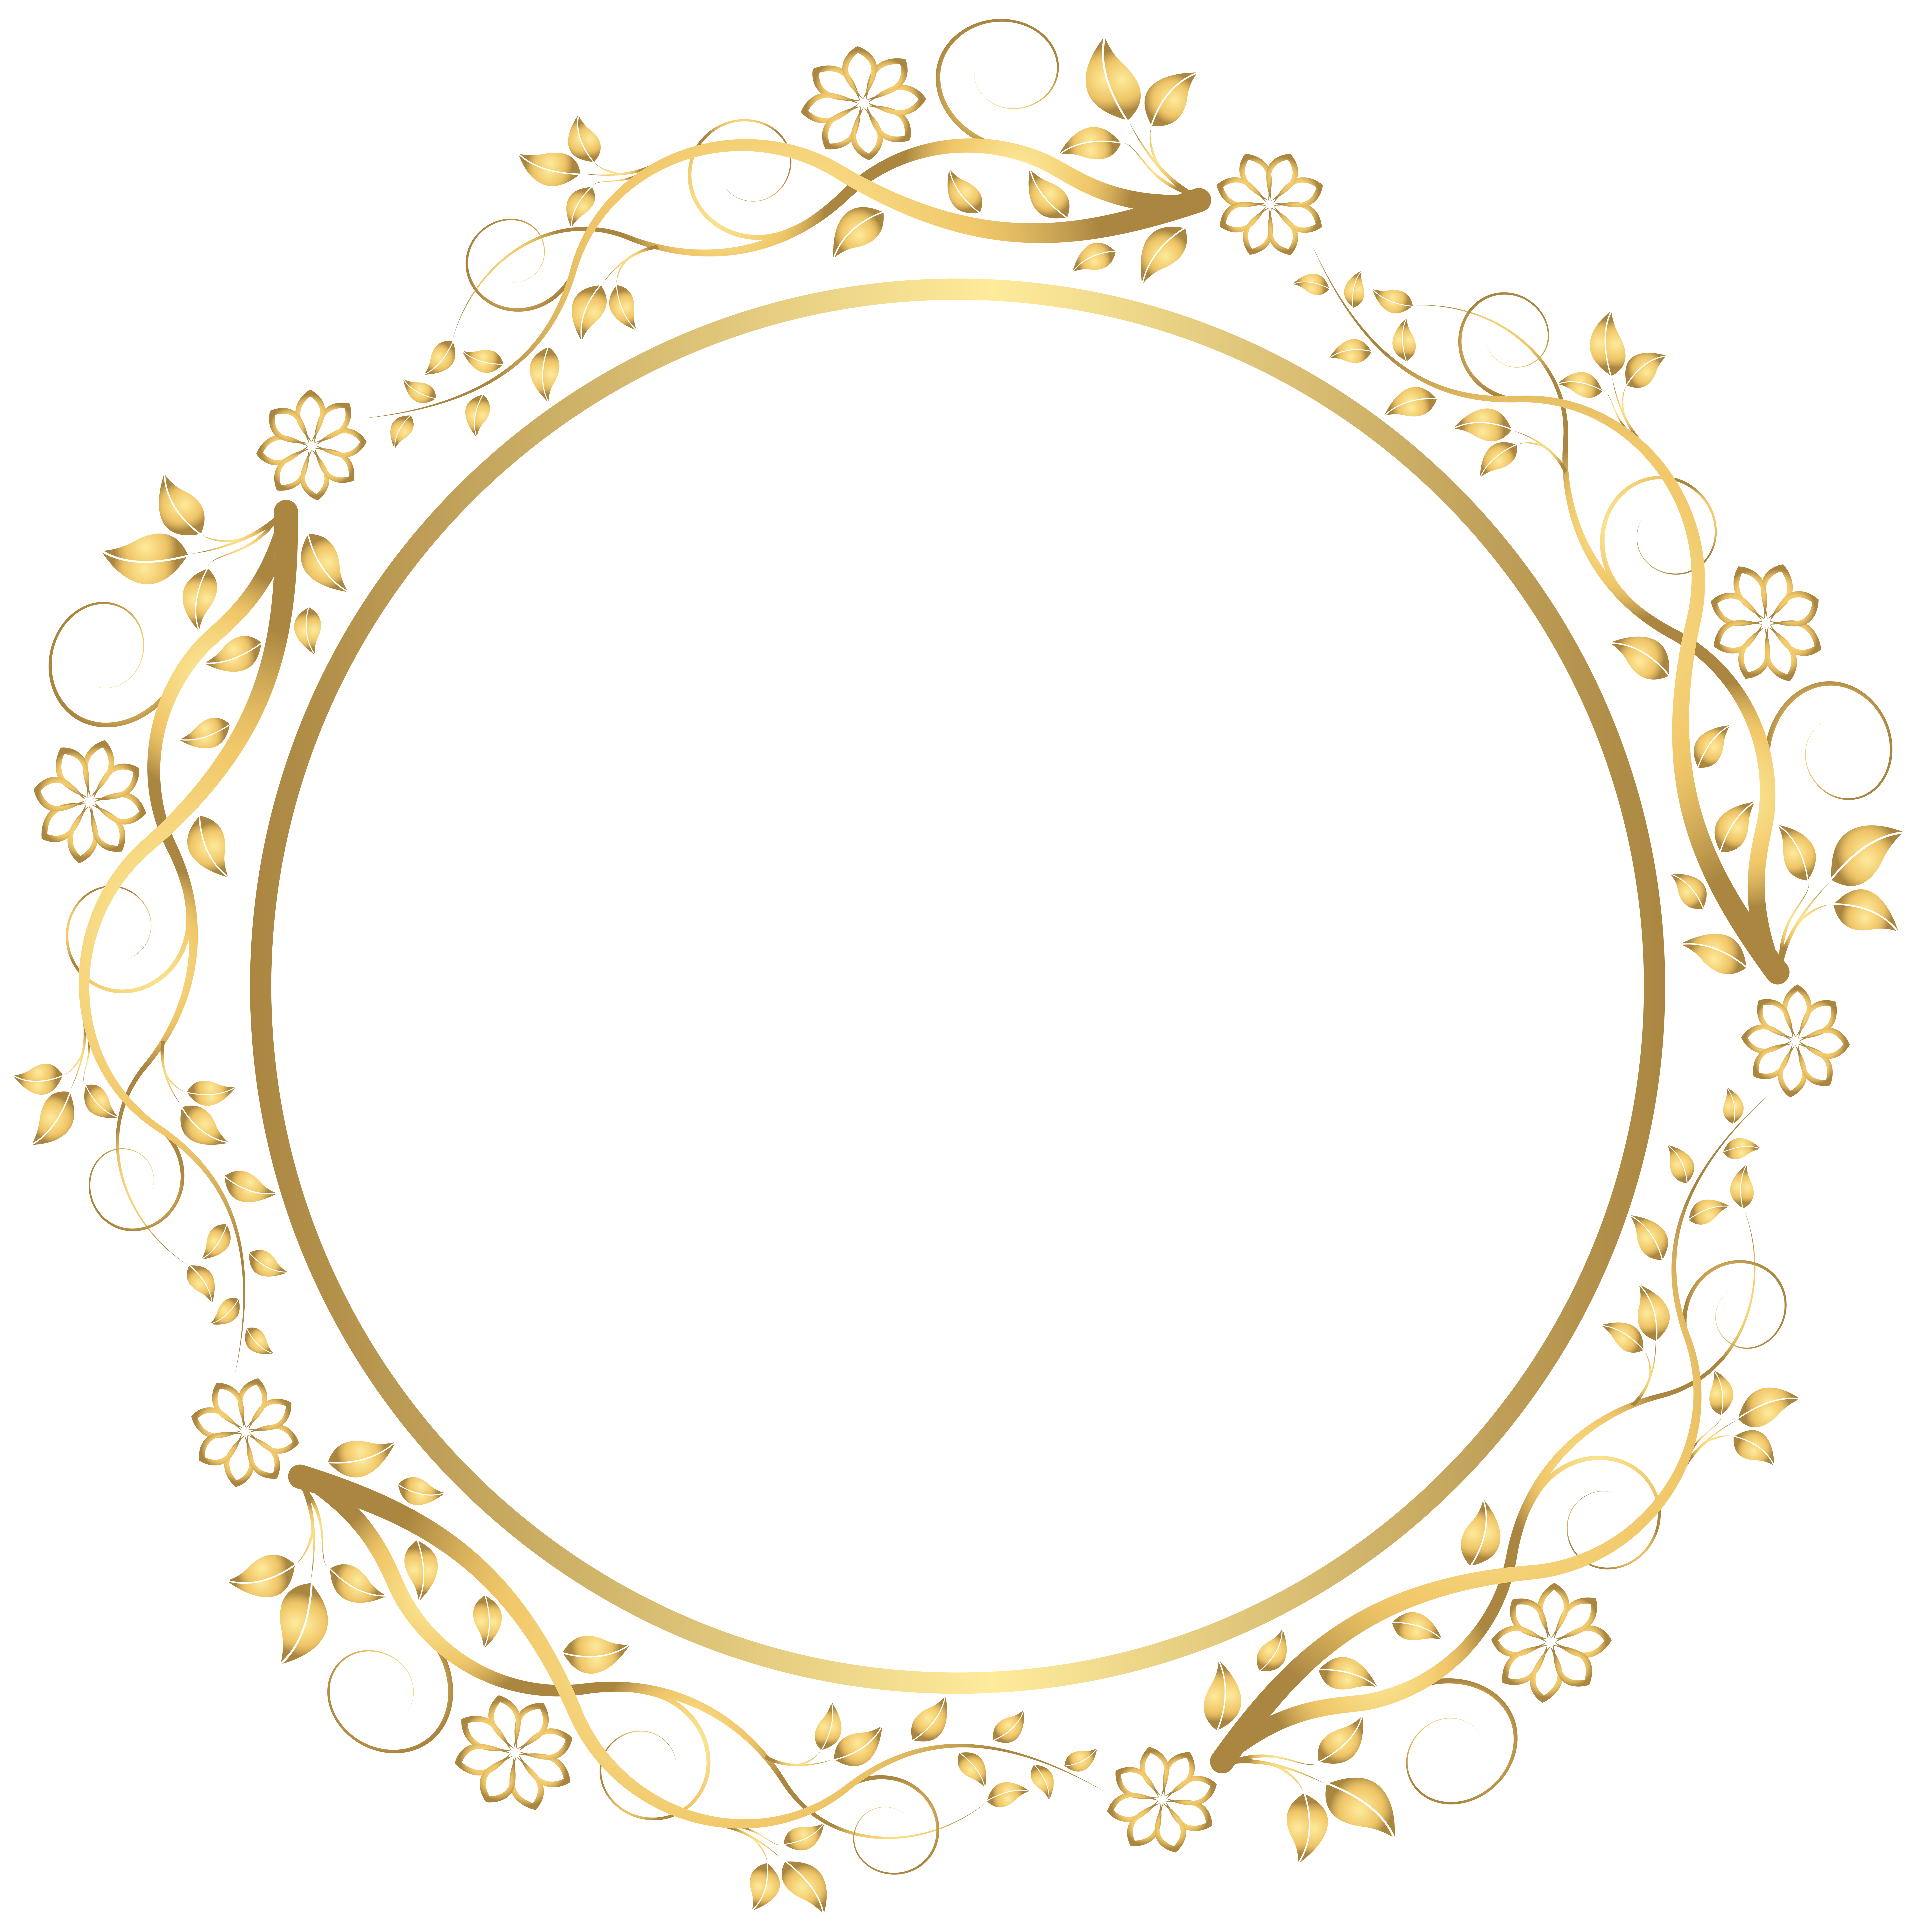 Round flower clipart download Gold Round Floral Border Transparent PNG Clip Art Image | Gallery ... download